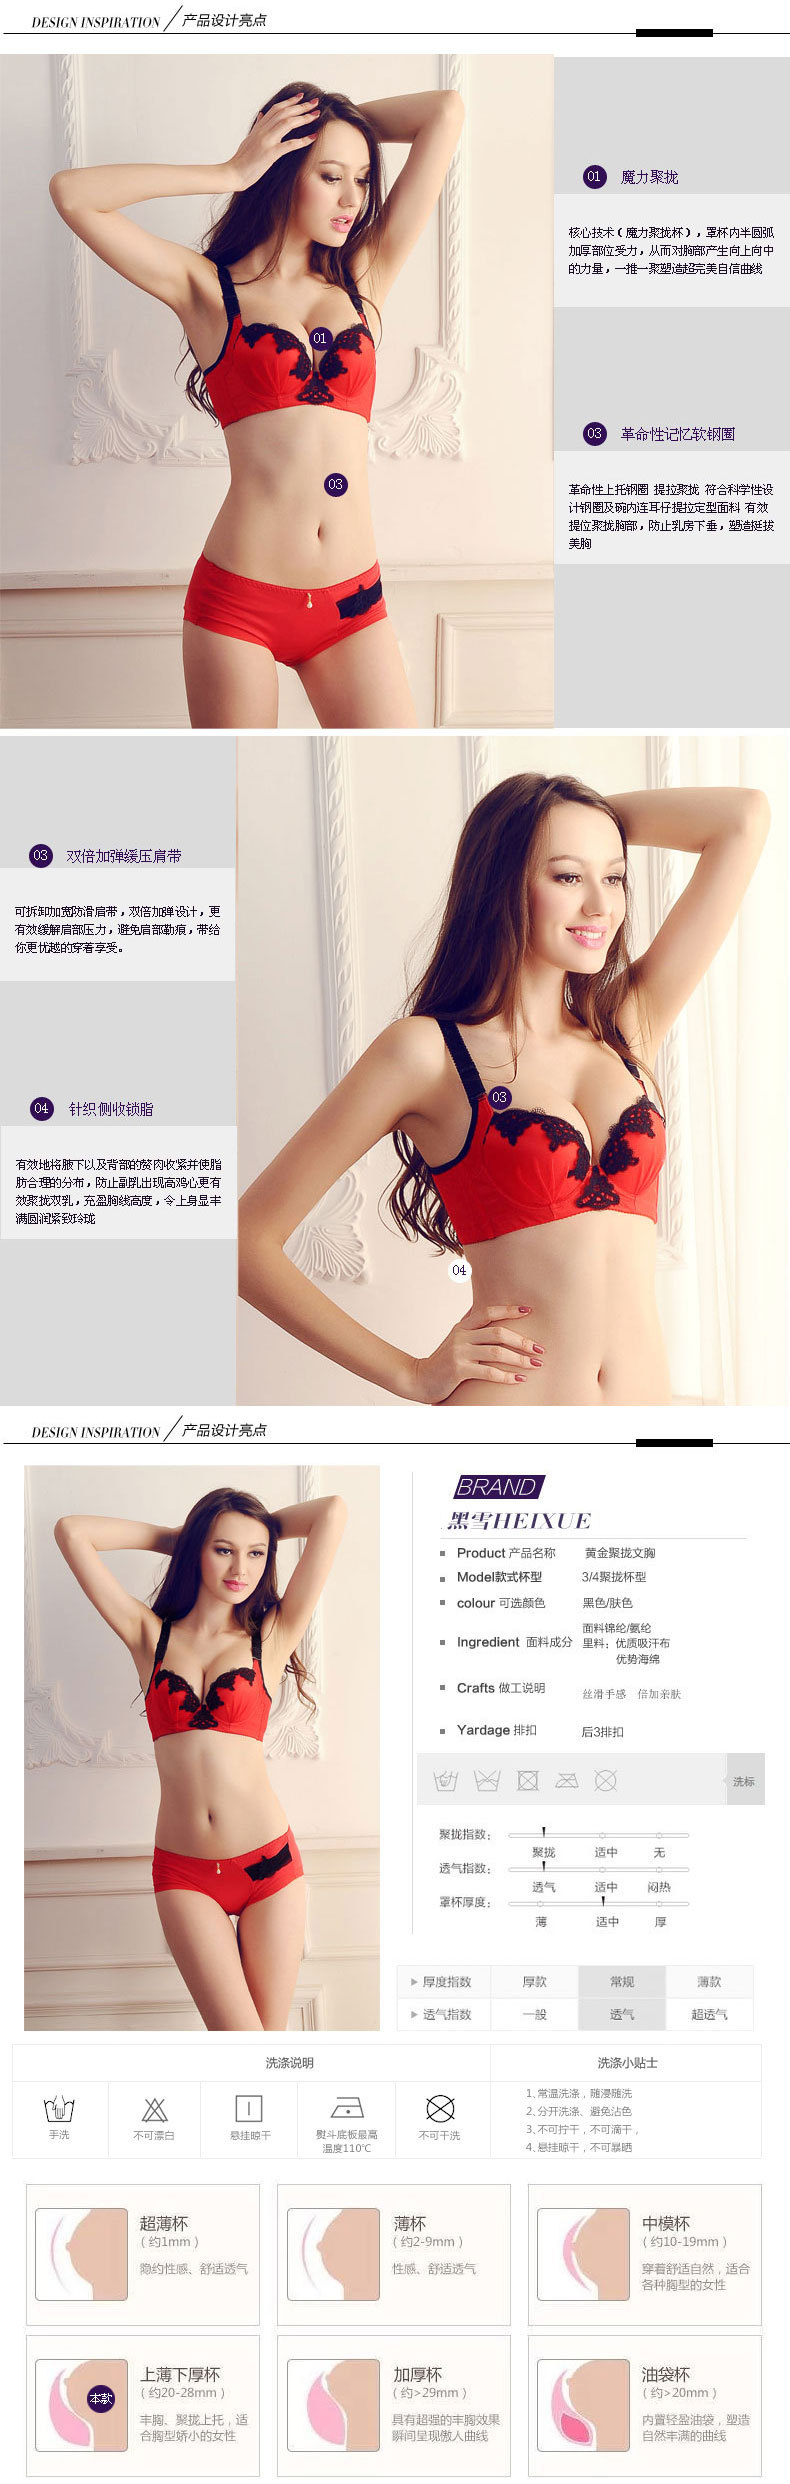 53726db6a6 Women  s ultra-thin transparent lace care on the big chest underwear sexy  hollow half-cup bra setUSD 18.95 piece